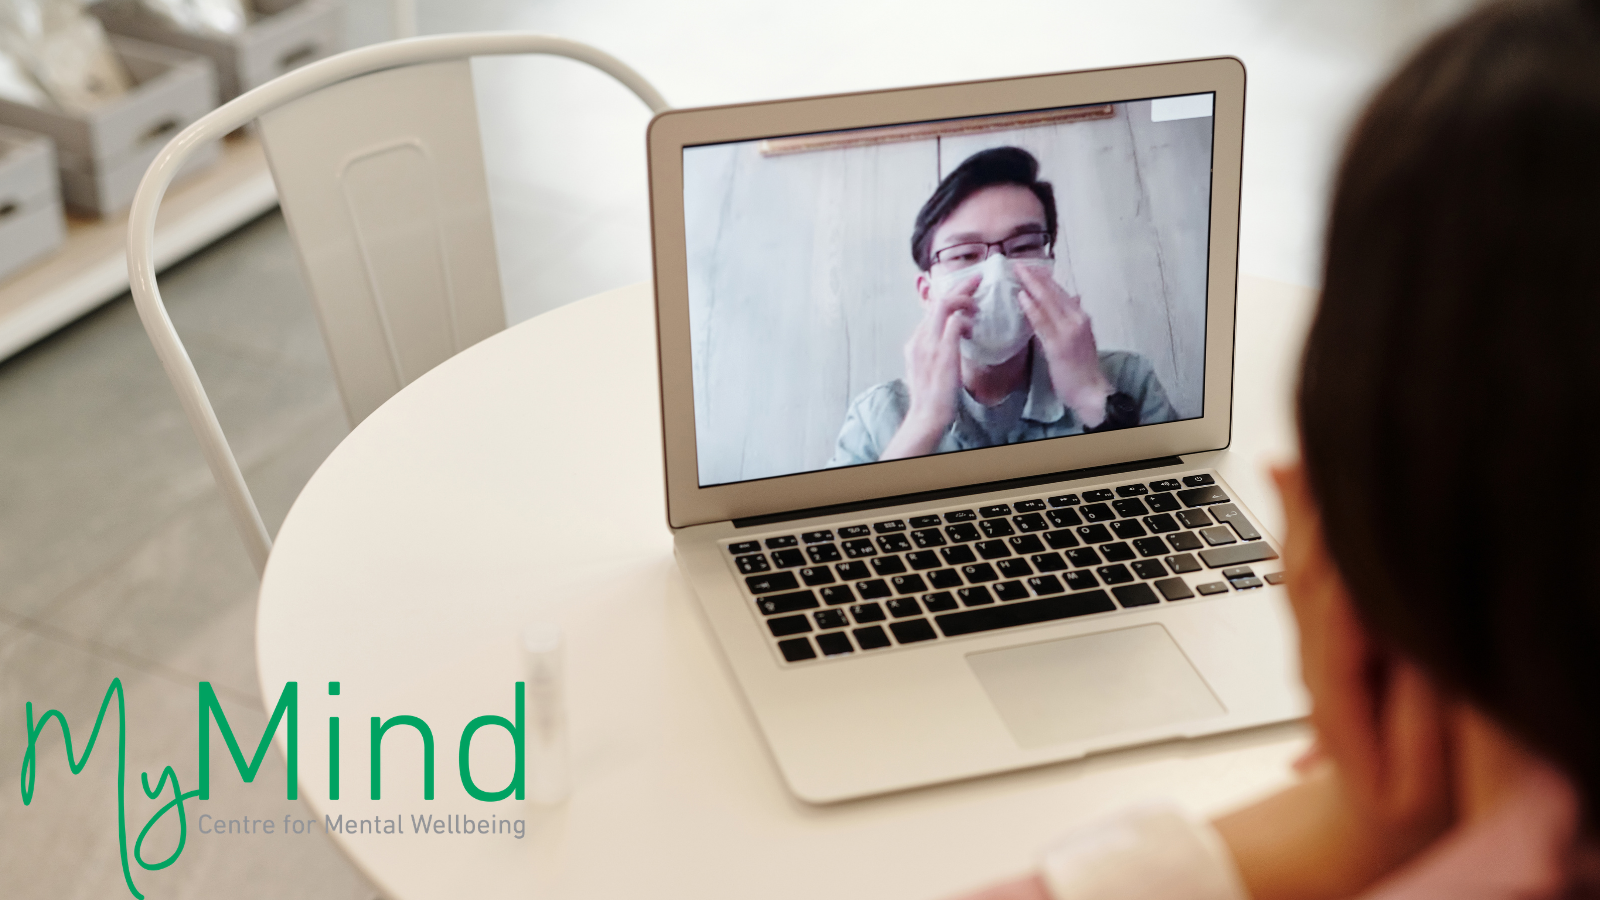 Covid-19 – Help and Support through Free Online Counselling